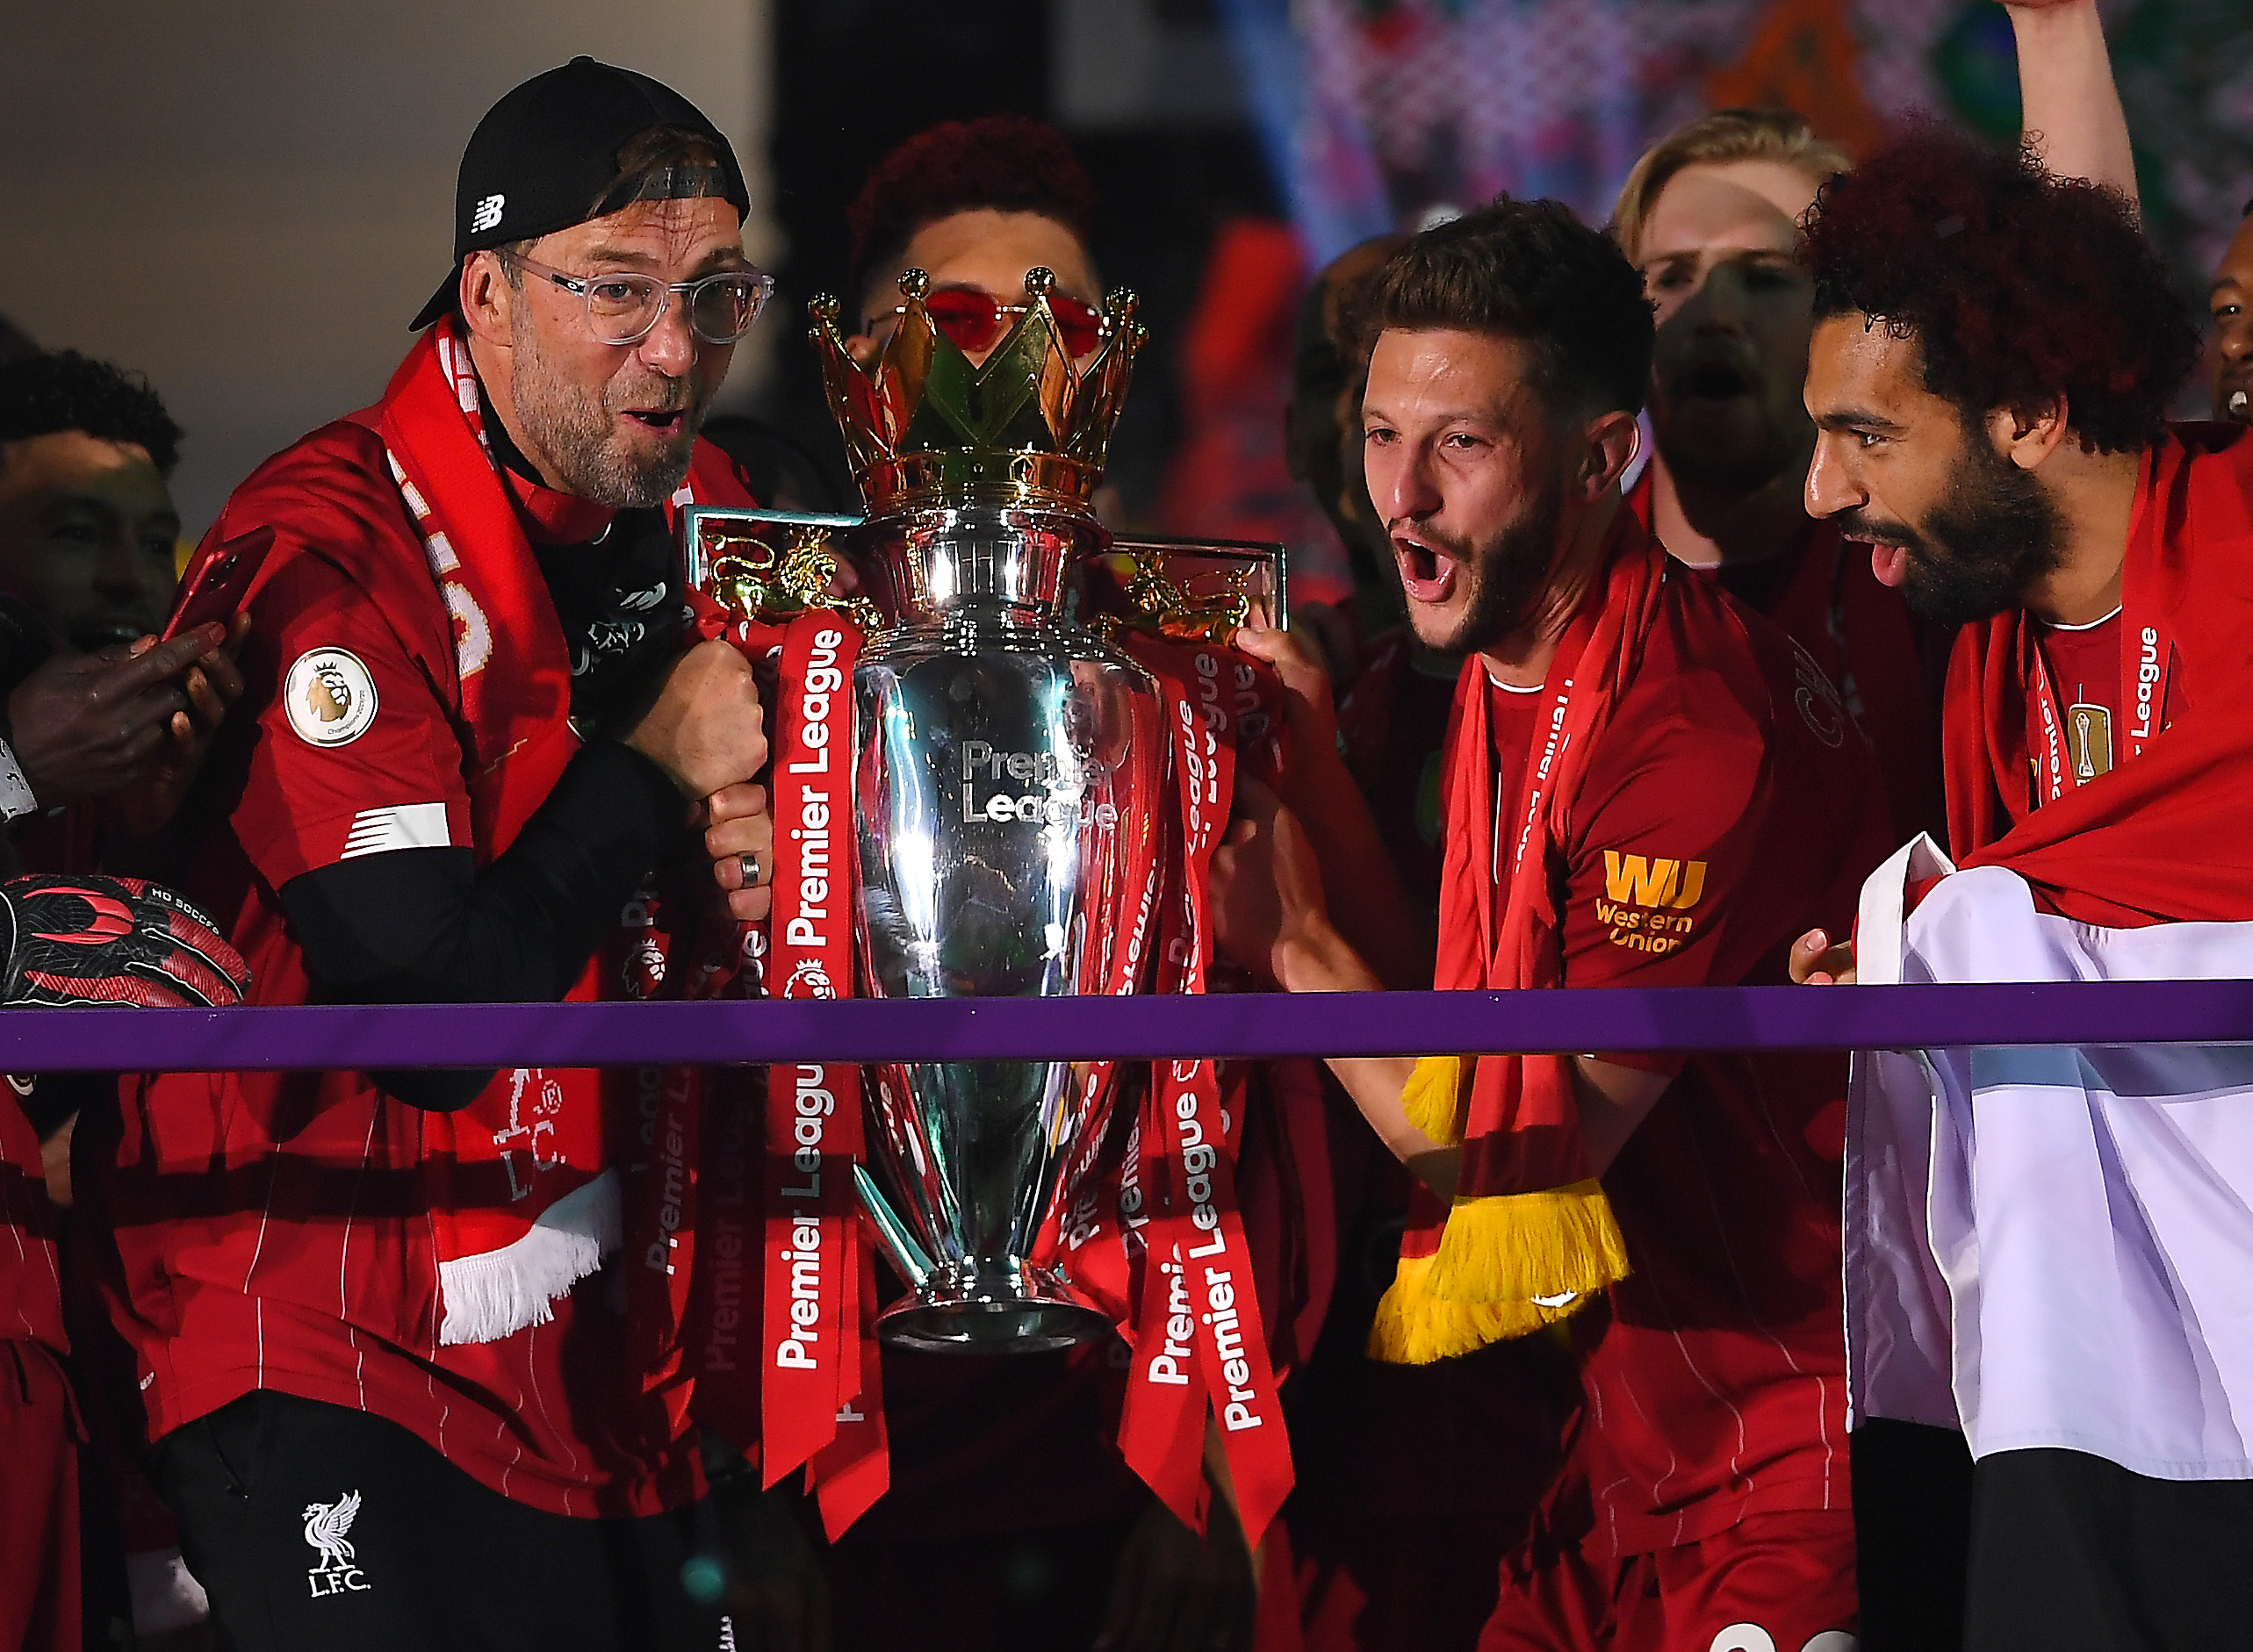 Strongest Liverpool lineup for the new season (Liverpool players and manager celebrating in the picture)